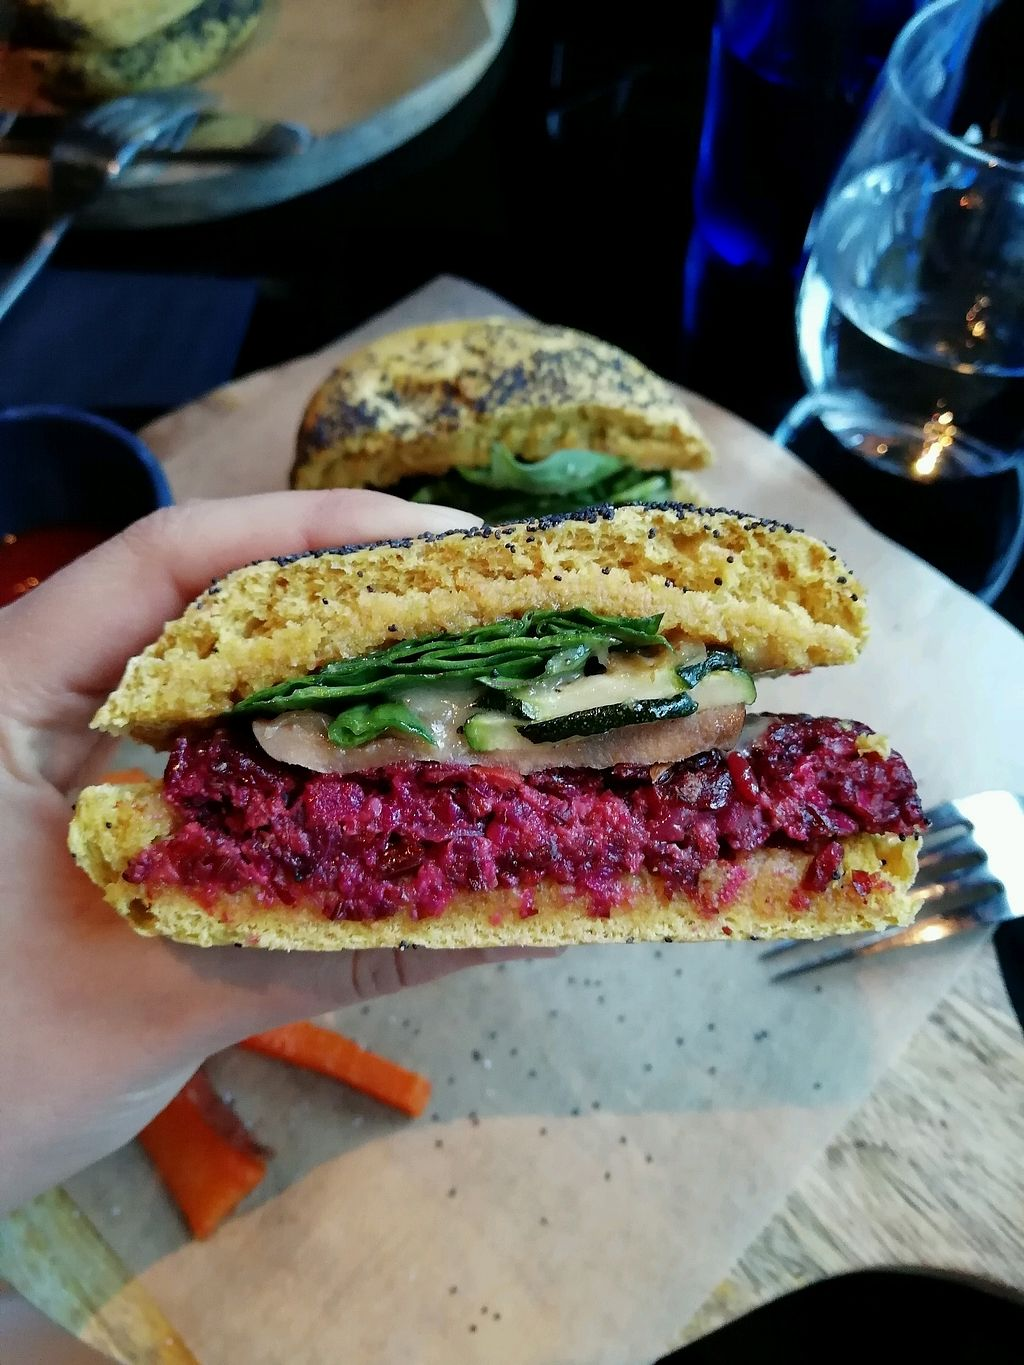 """Photo of Wild Food  by <a href=""""/members/profile/Marieke95"""">Marieke95</a> <br/>Wild burger with sweet potatoes (optional: gluten free) <br/> April 13, 2018  - <a href='/contact/abuse/image/106140/385329'>Report</a>"""